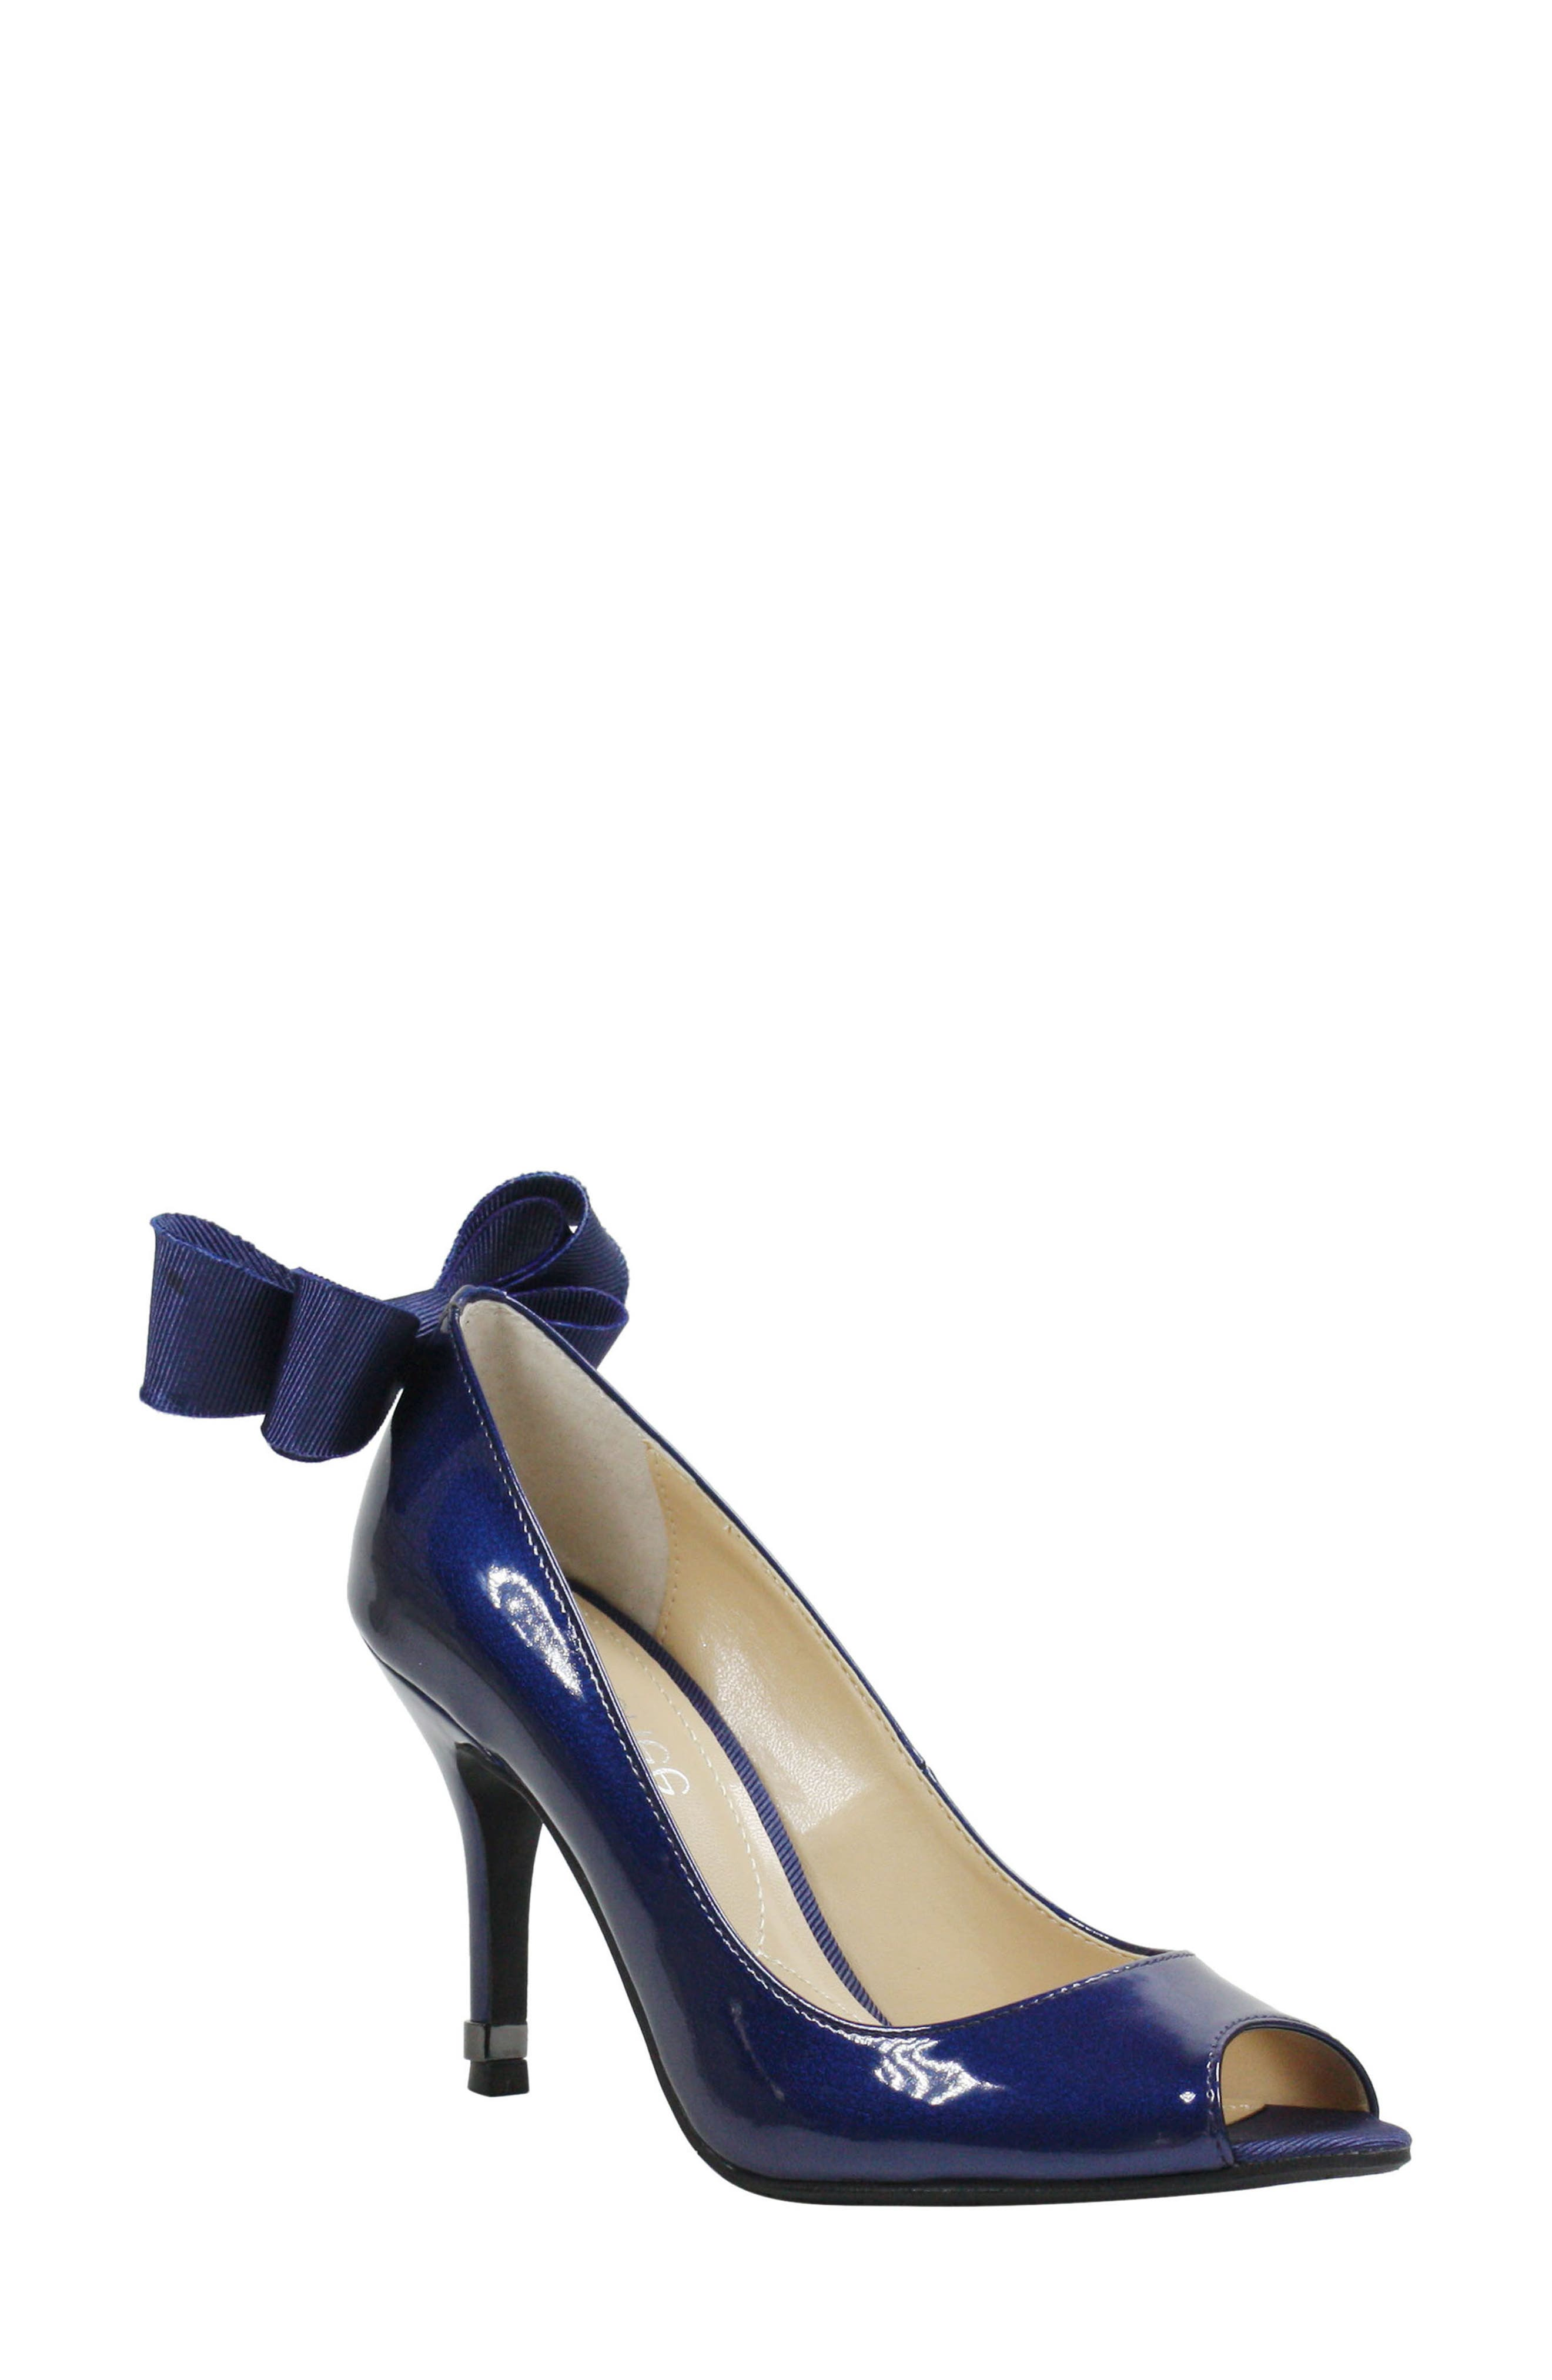 Ellasee Bow Peep Toe Pump,                         Main,                         color, NAVY FAUX LEATHER